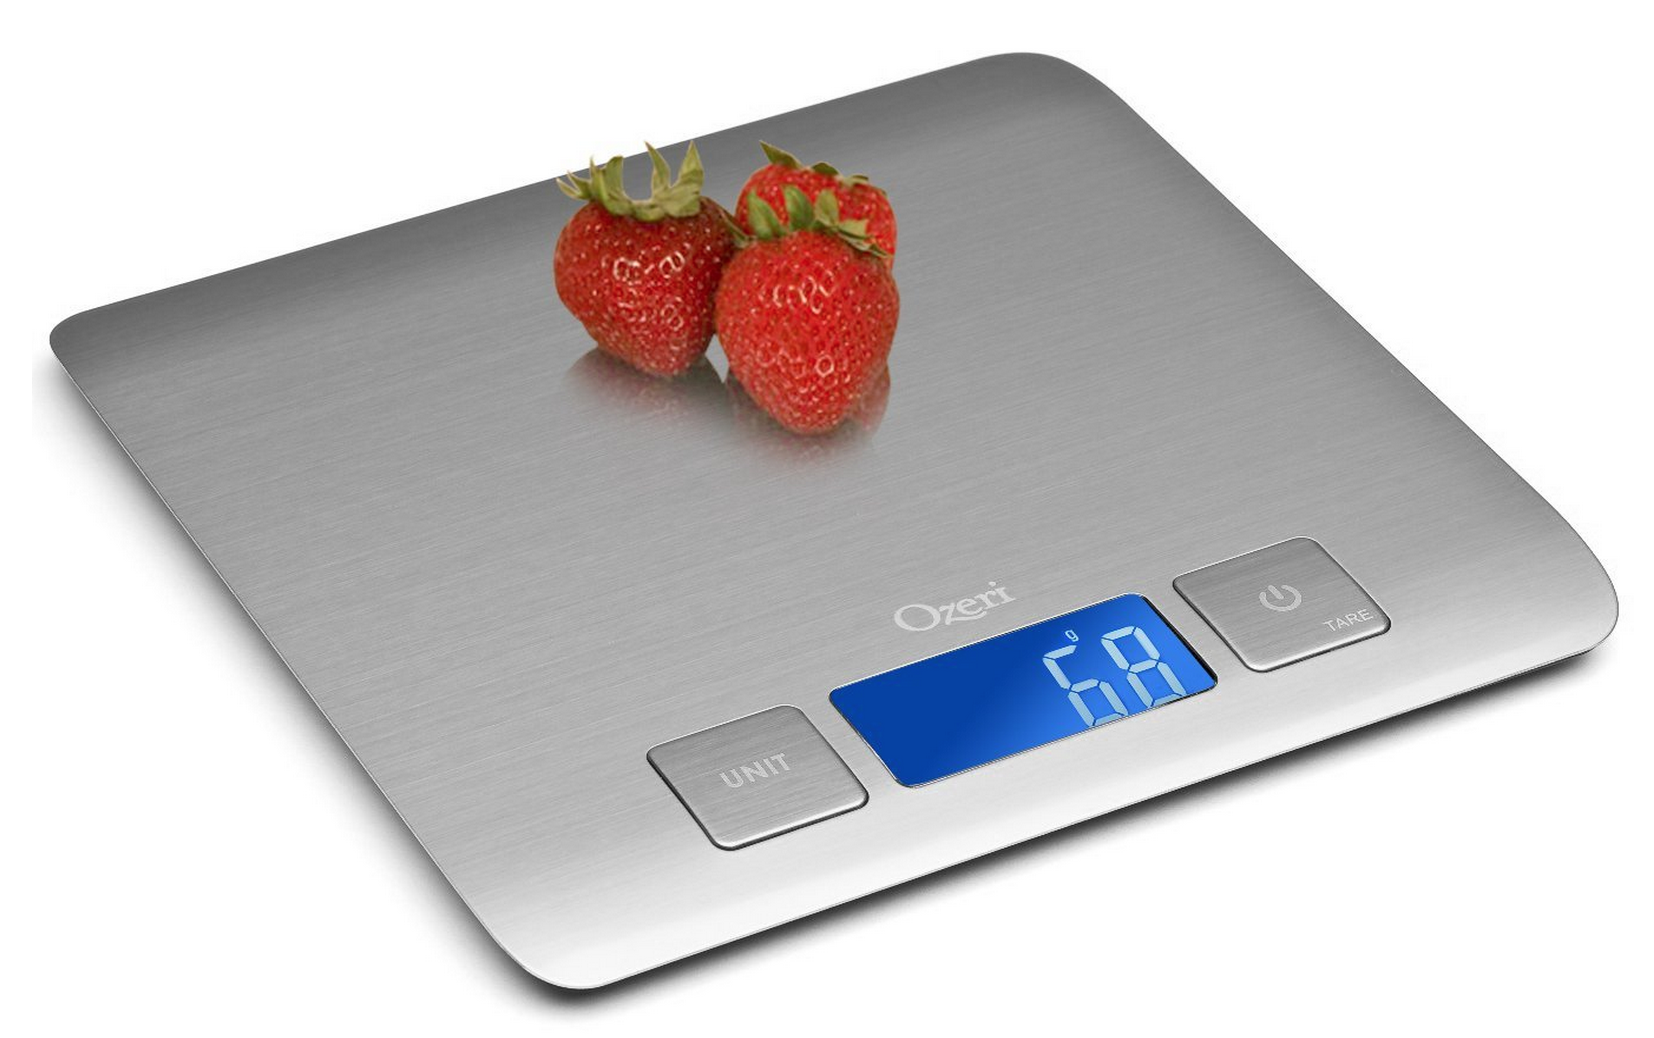 Zenith Digital Kitchen Scale Only $10.95 (Reg. $49.95!)